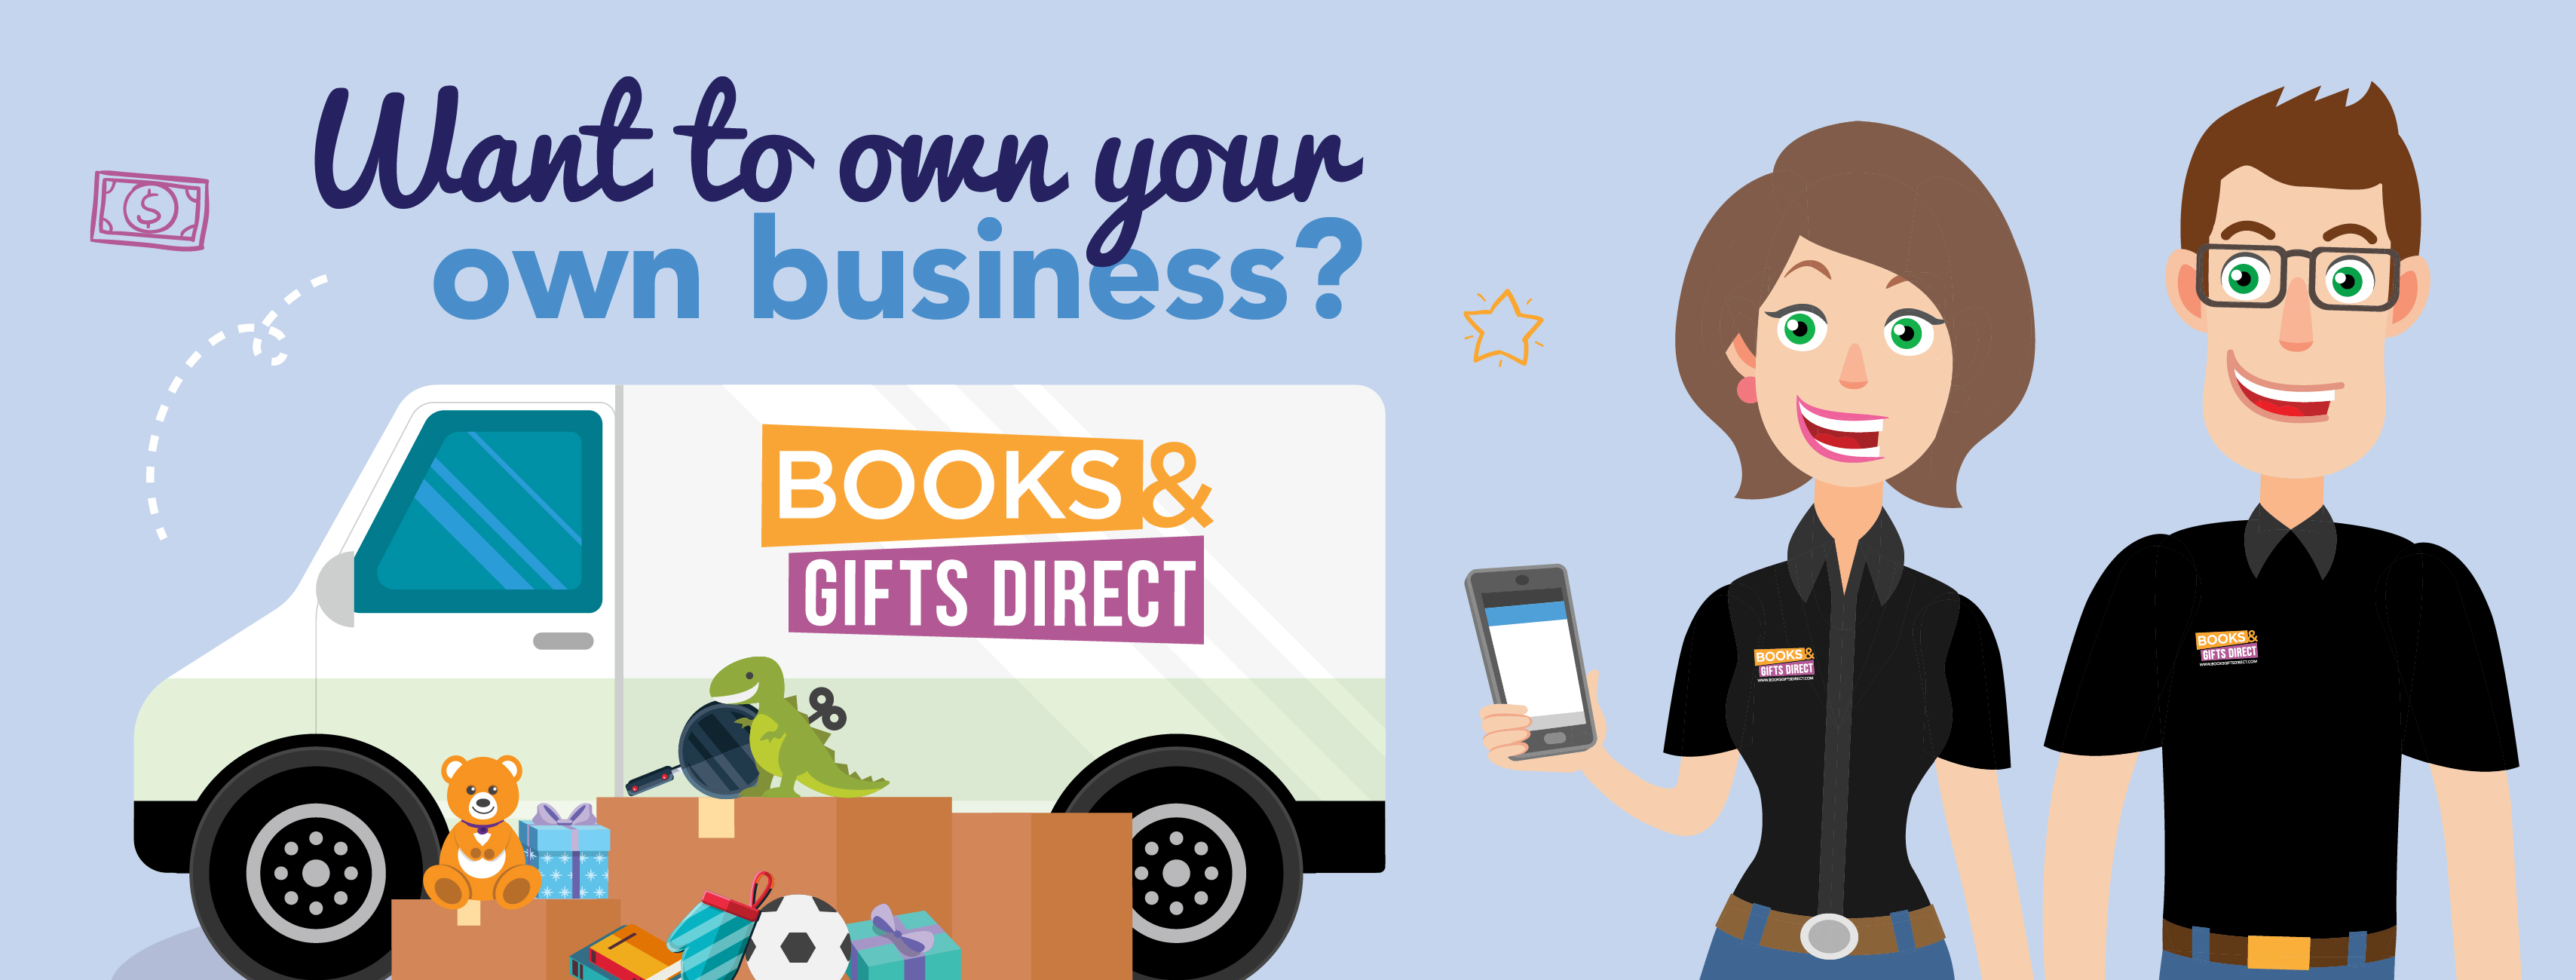 Books & Gifts Direct Franchise For Sale - Maitland